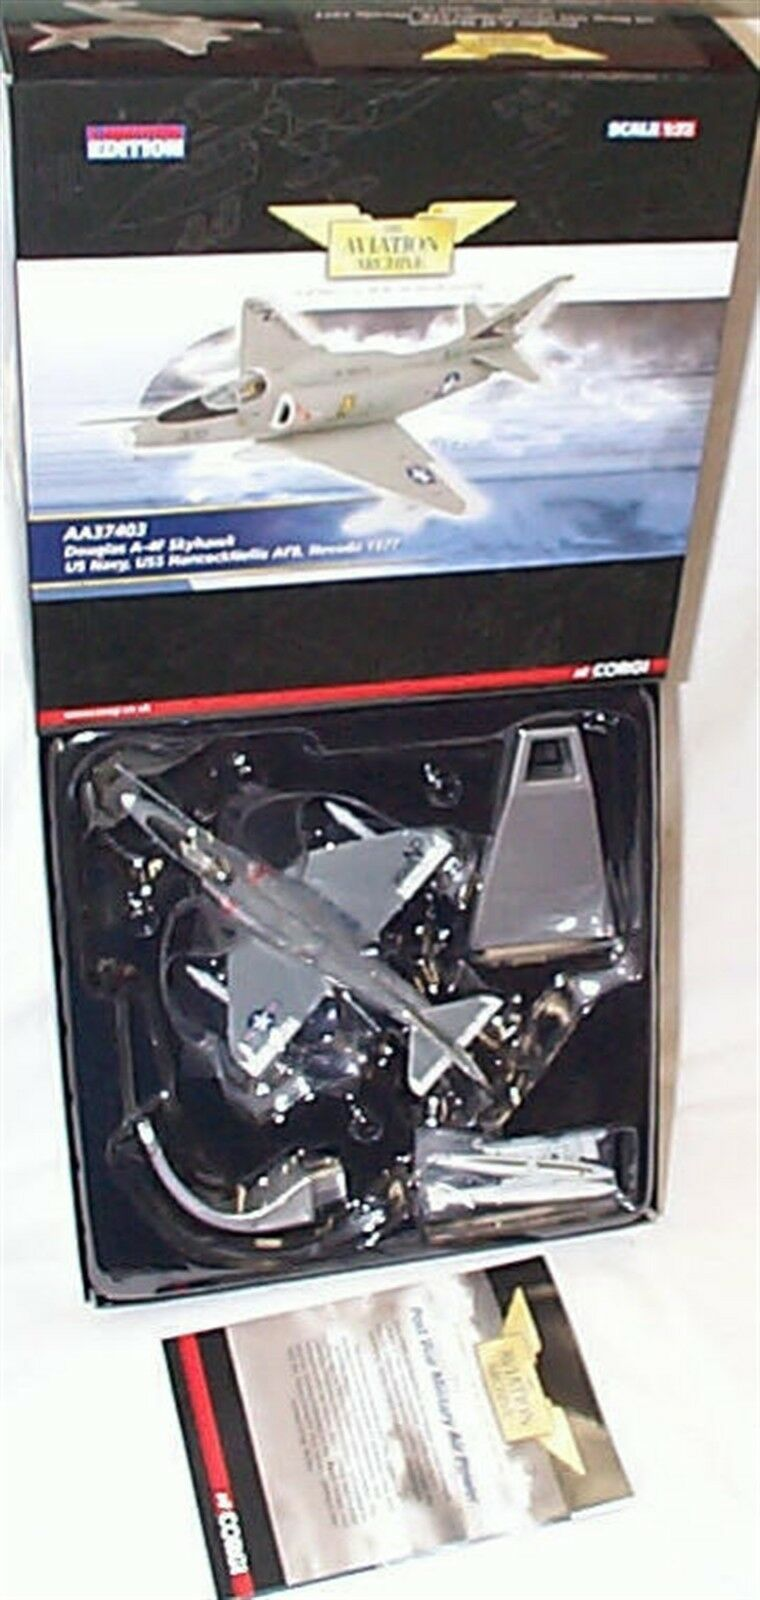 Douglas a-4f skyhawk uns nevada 1977 corgi 1-72 skala aa37403 new in box ltd. ed